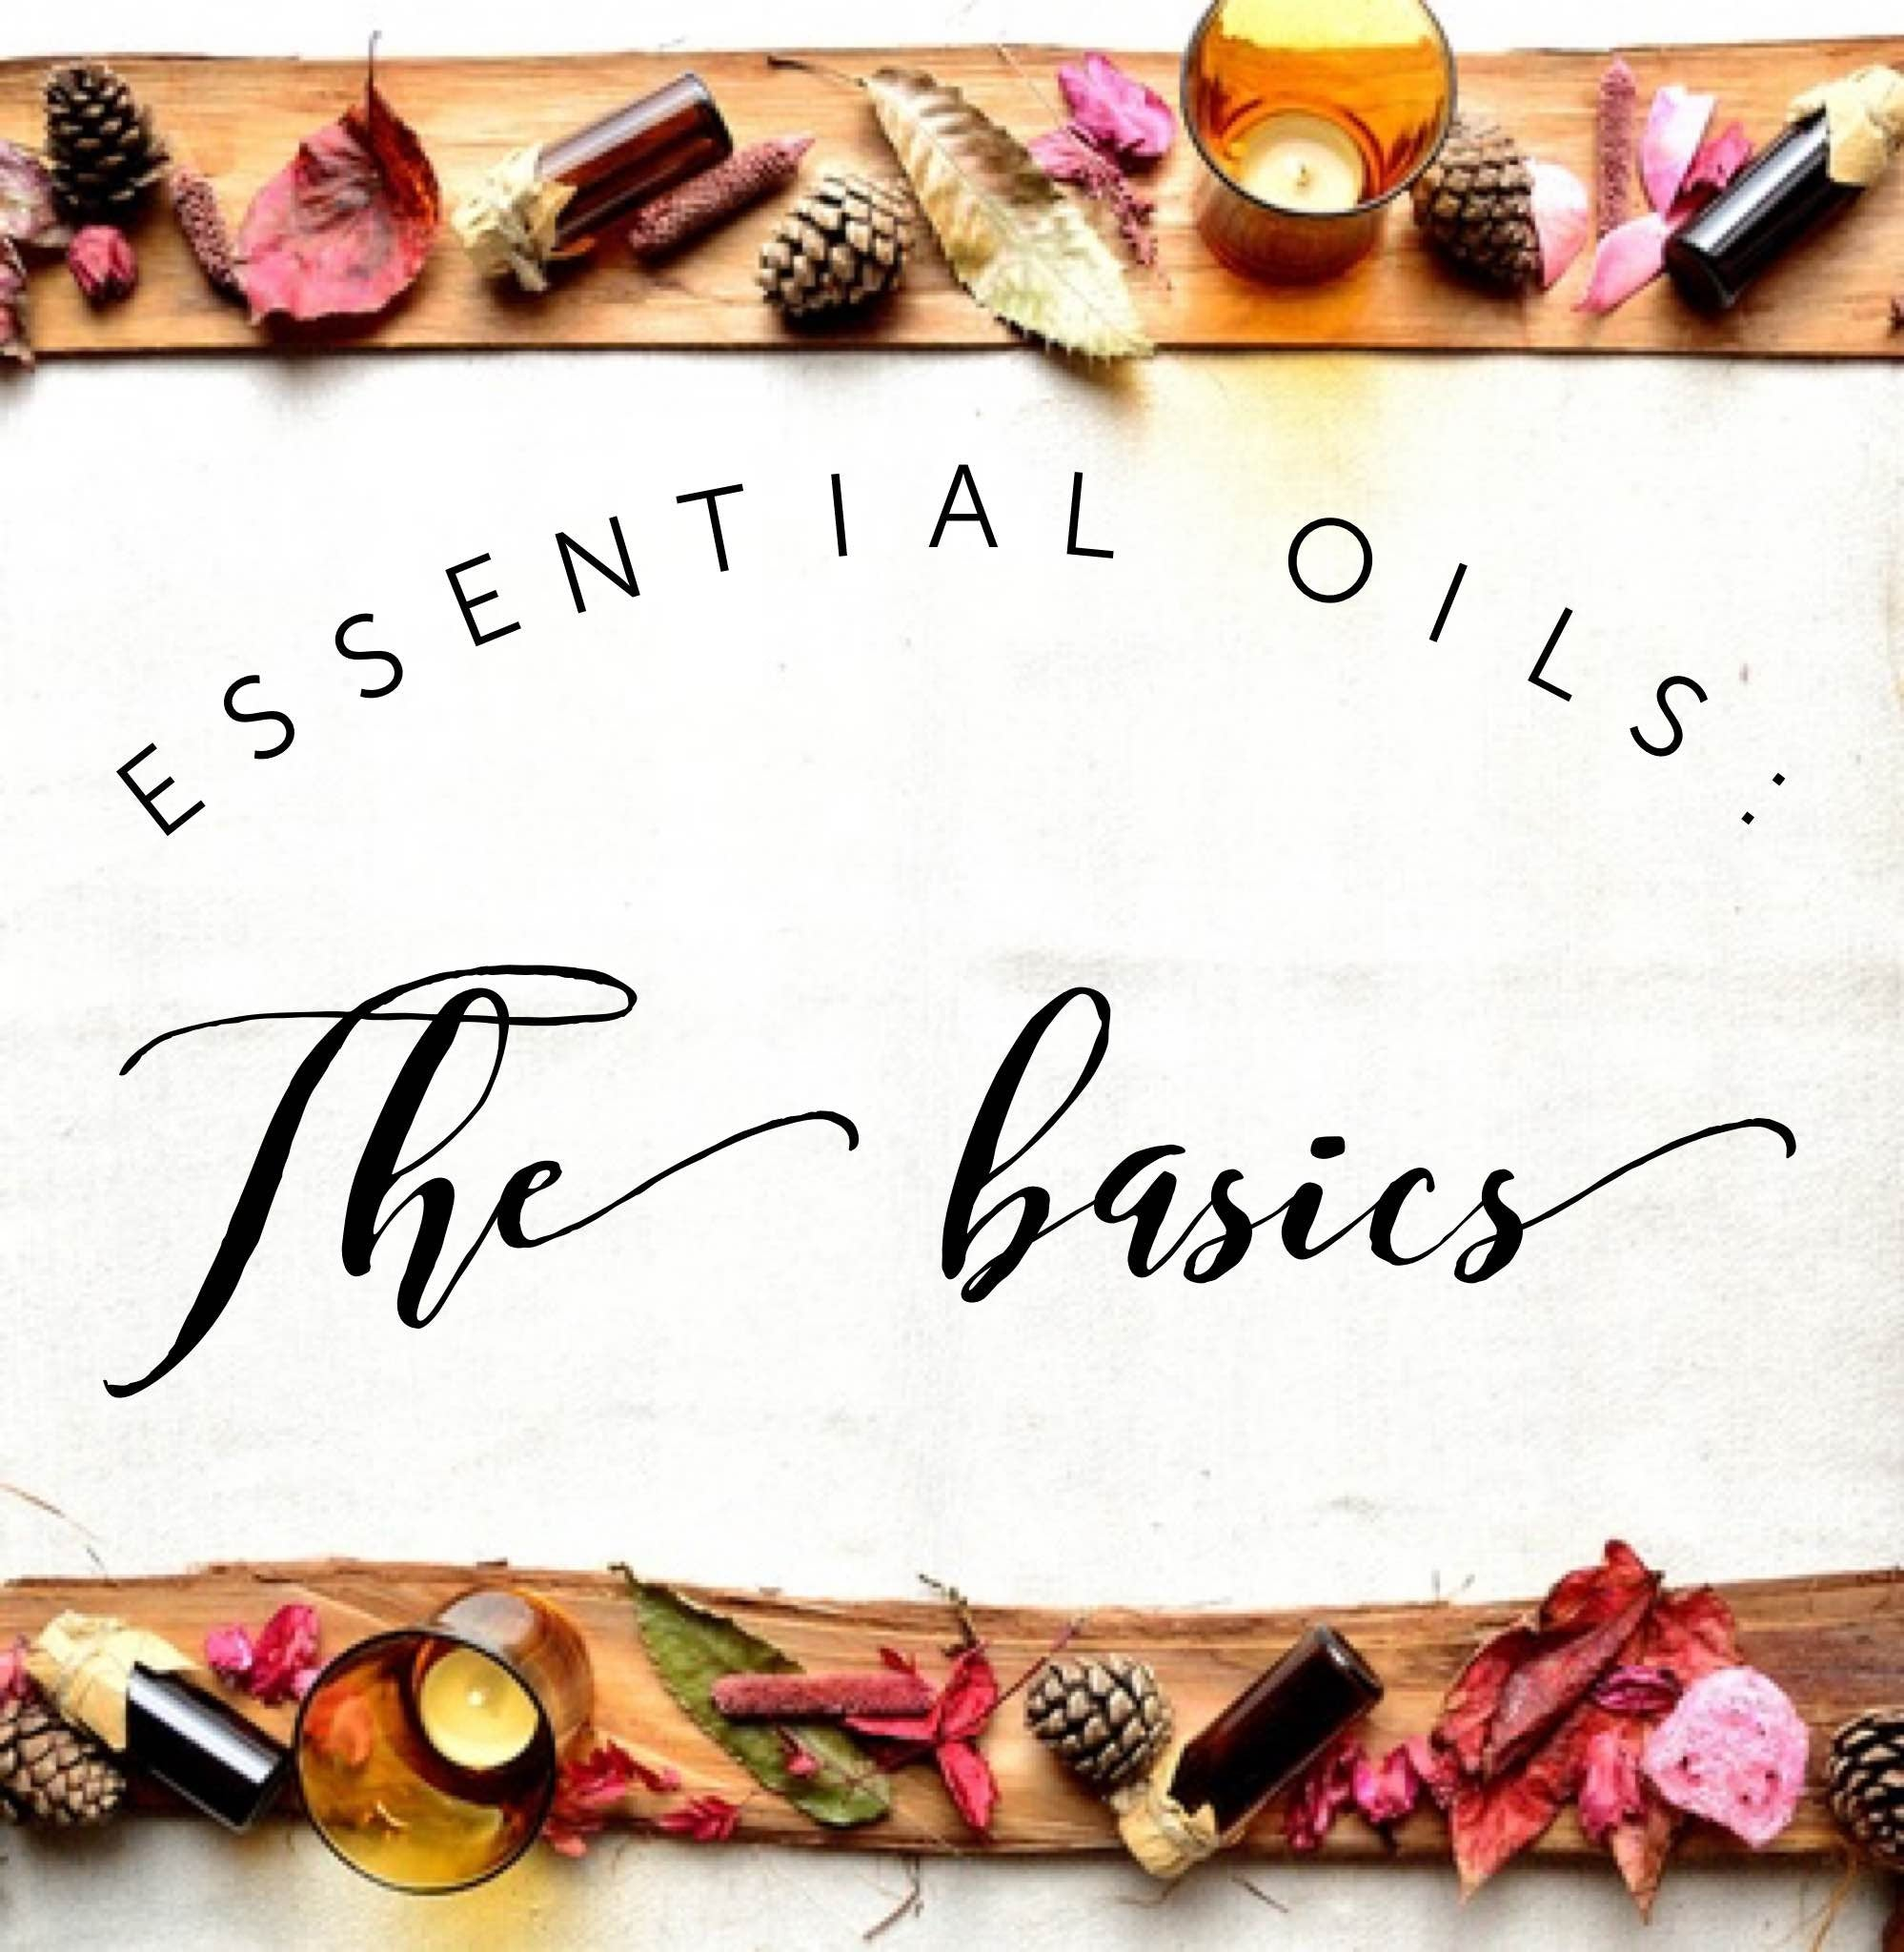 New to Essential Oils? Start here with our TOP 3 must haves....!